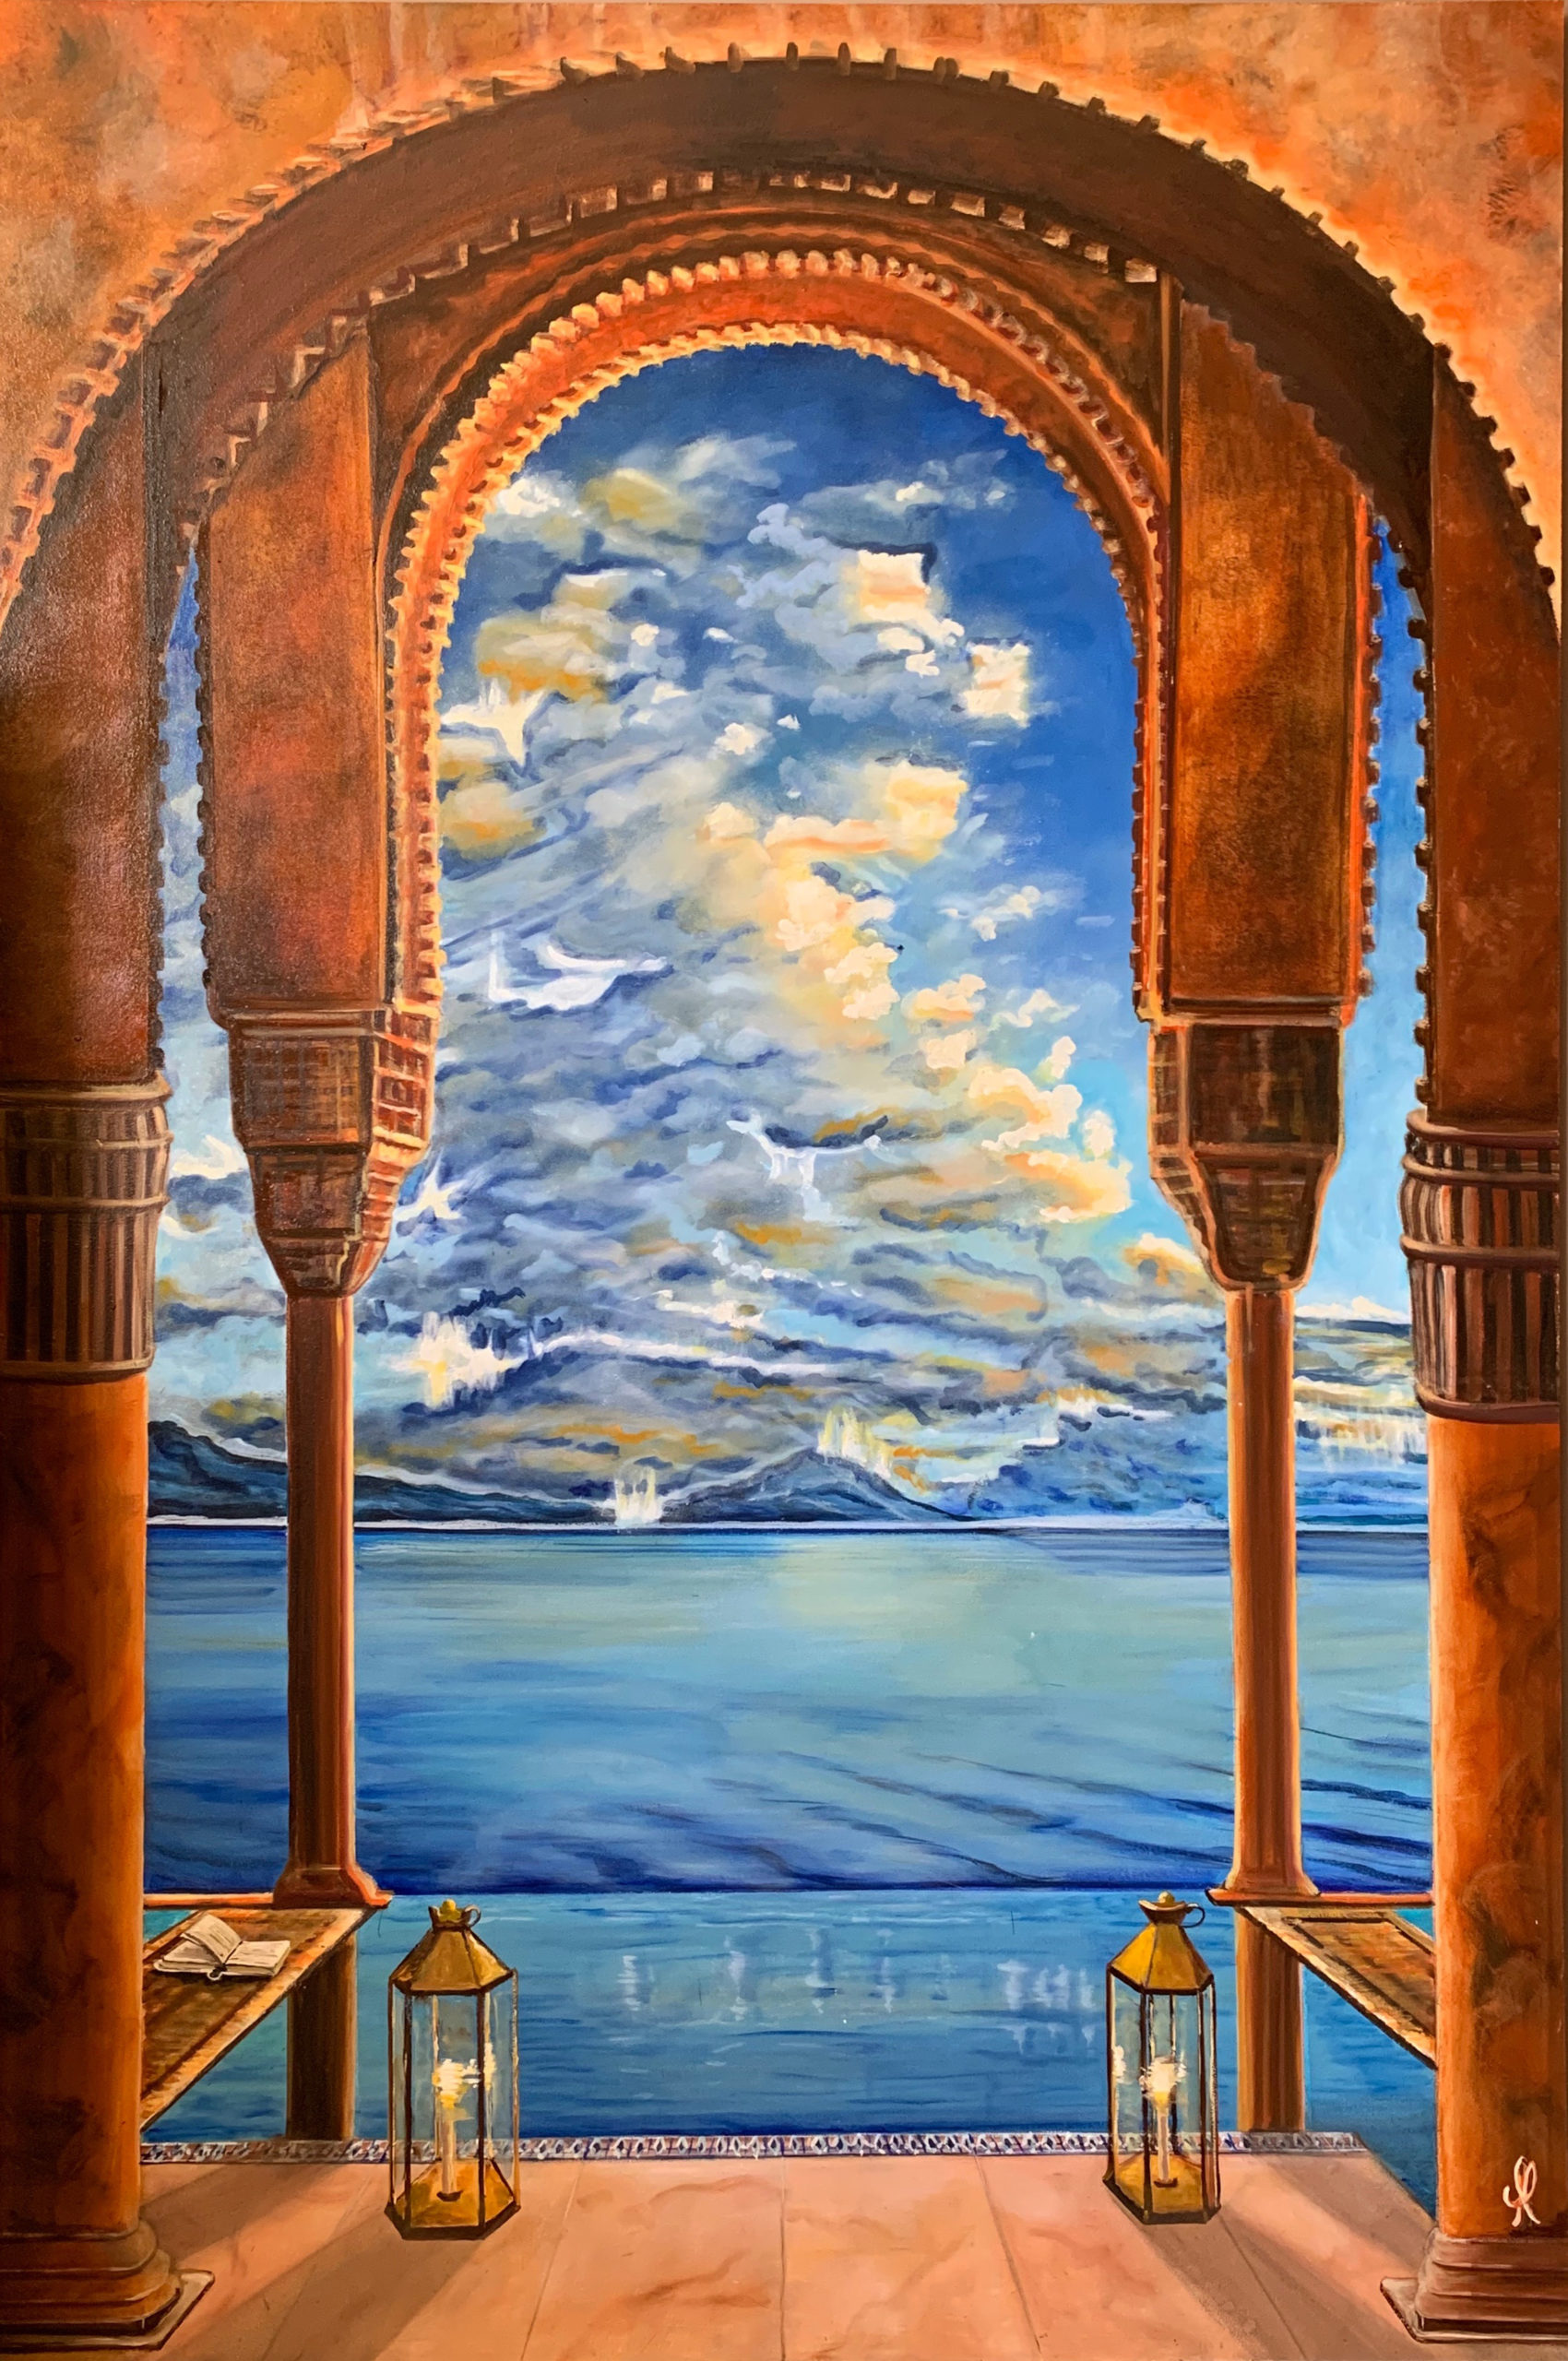 Moroccan palace - oil on canvas 135x90